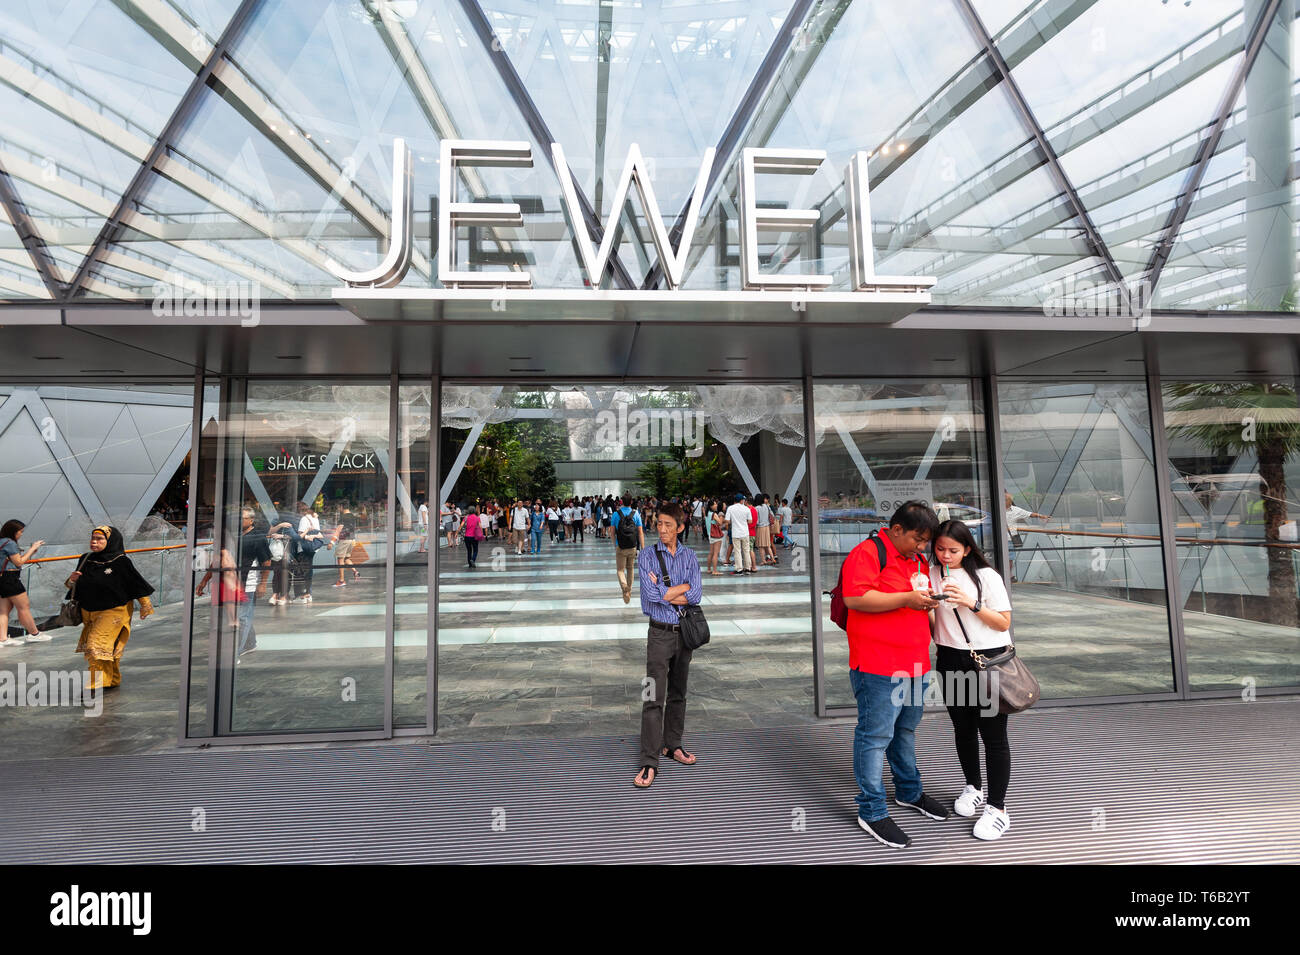 28.04.2019, Singapore, Republic of Singapore, Asia - People at the entrance to the new Jewel Terminal at Changi Airport. - Stock Image